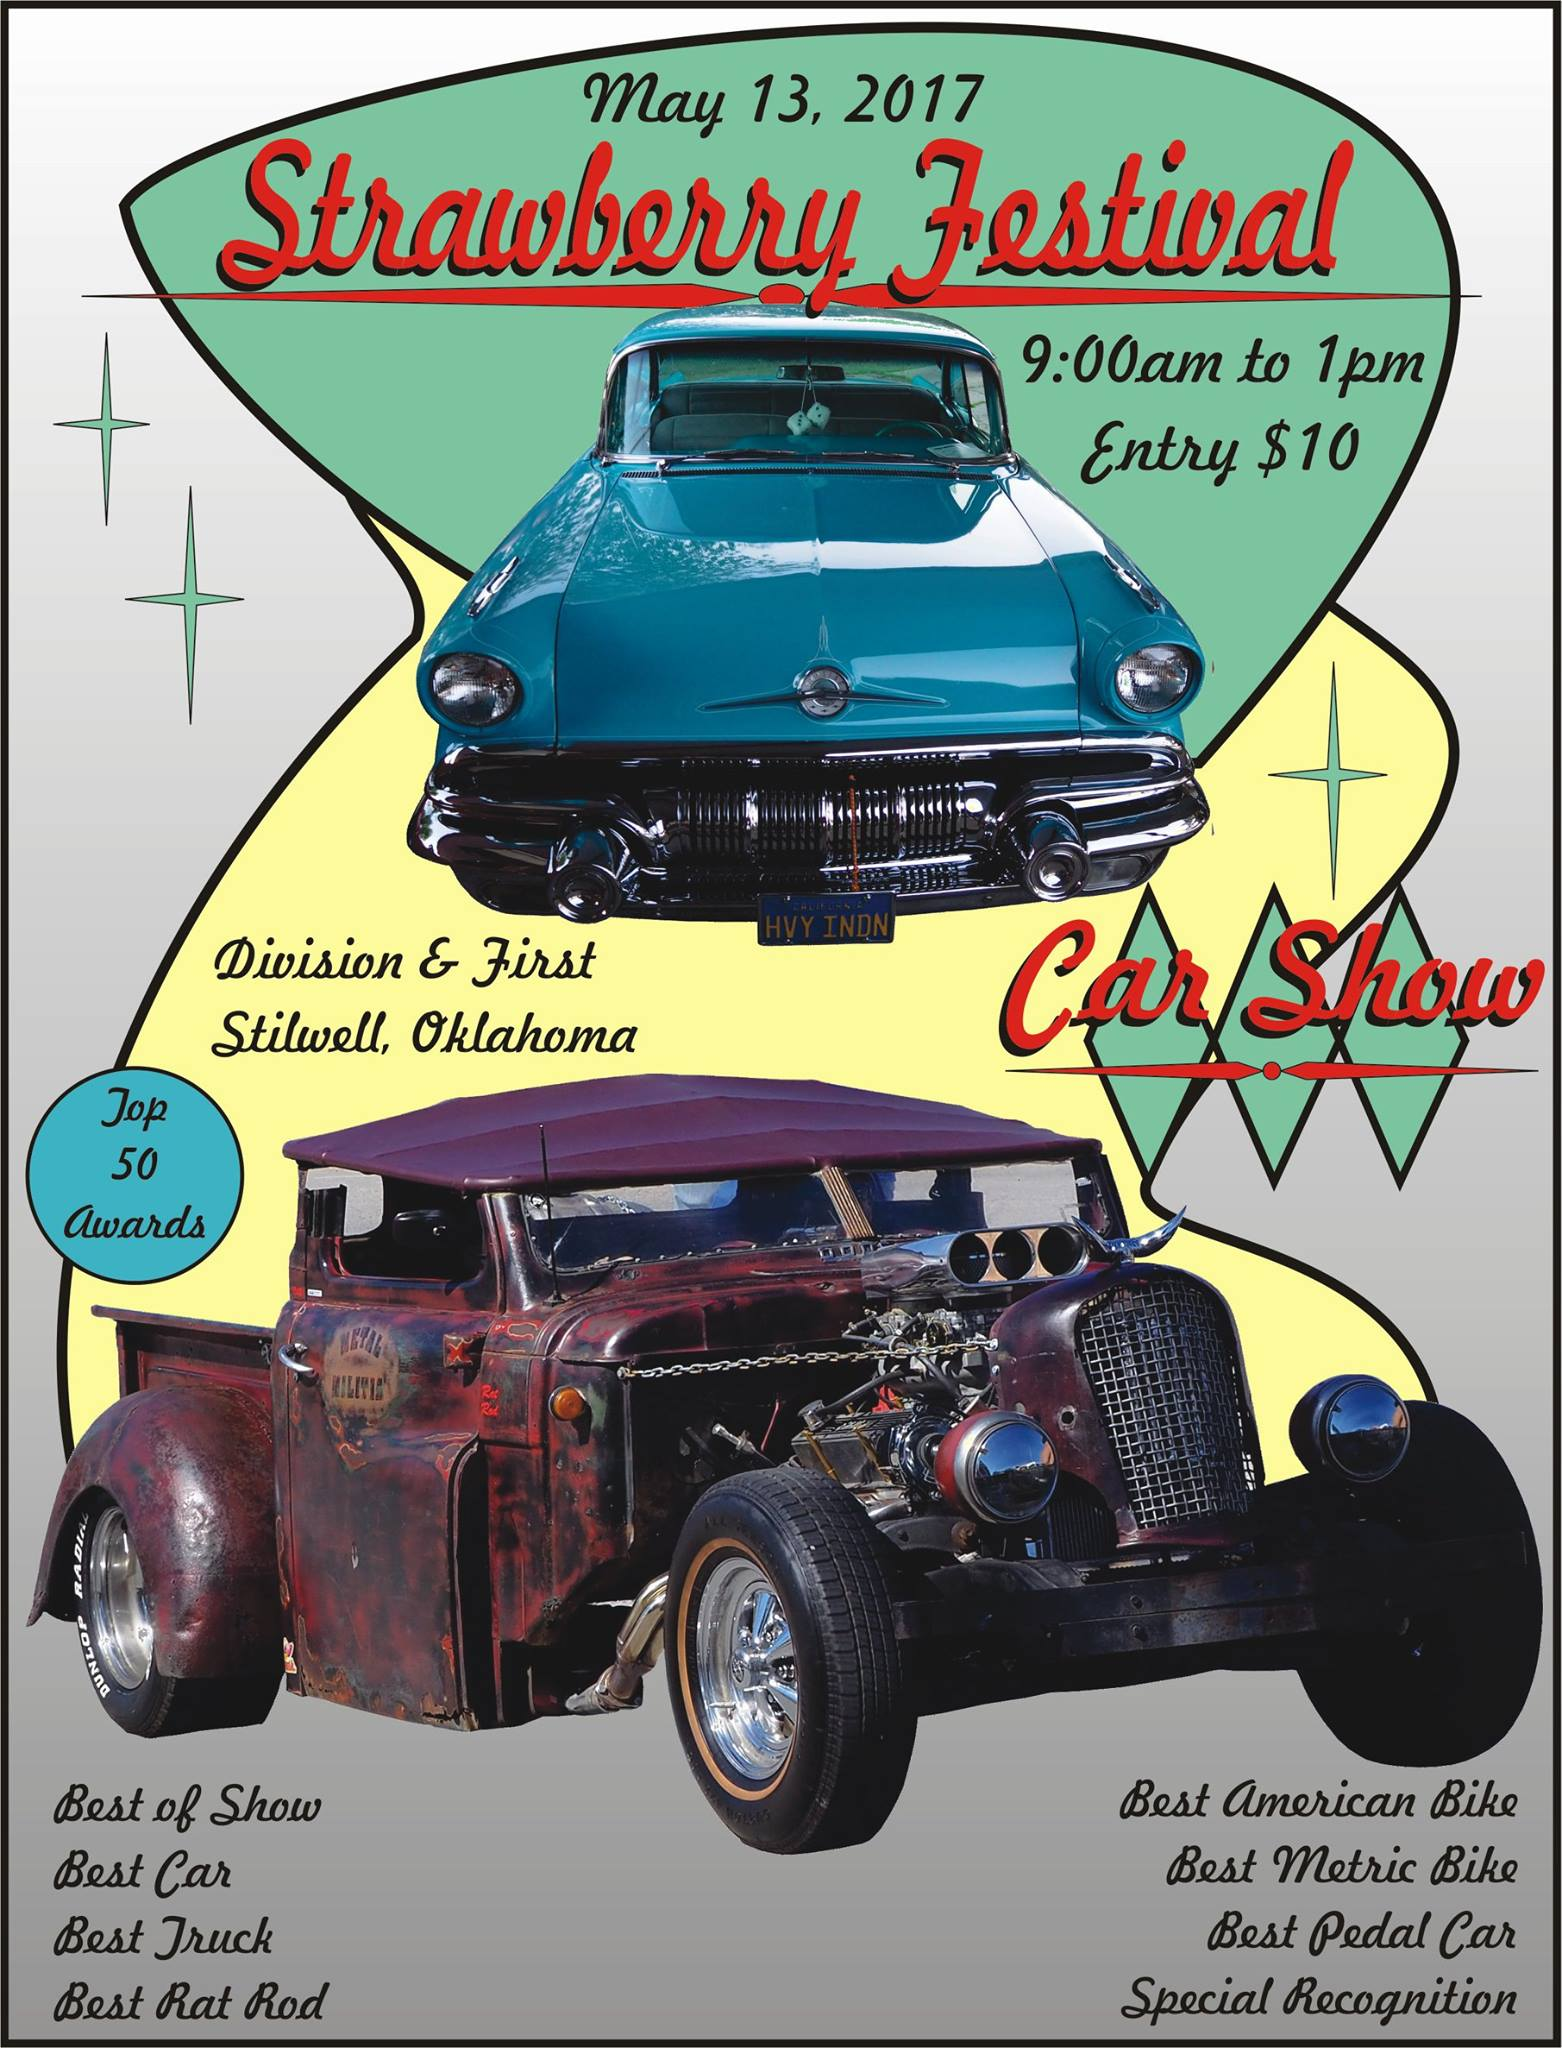 oklahoma area car shows and events listing we list oklahoma area awards for best of show best car best truck best rat rod best american bike best metric bike best pedal car and special recognition entry fee 10